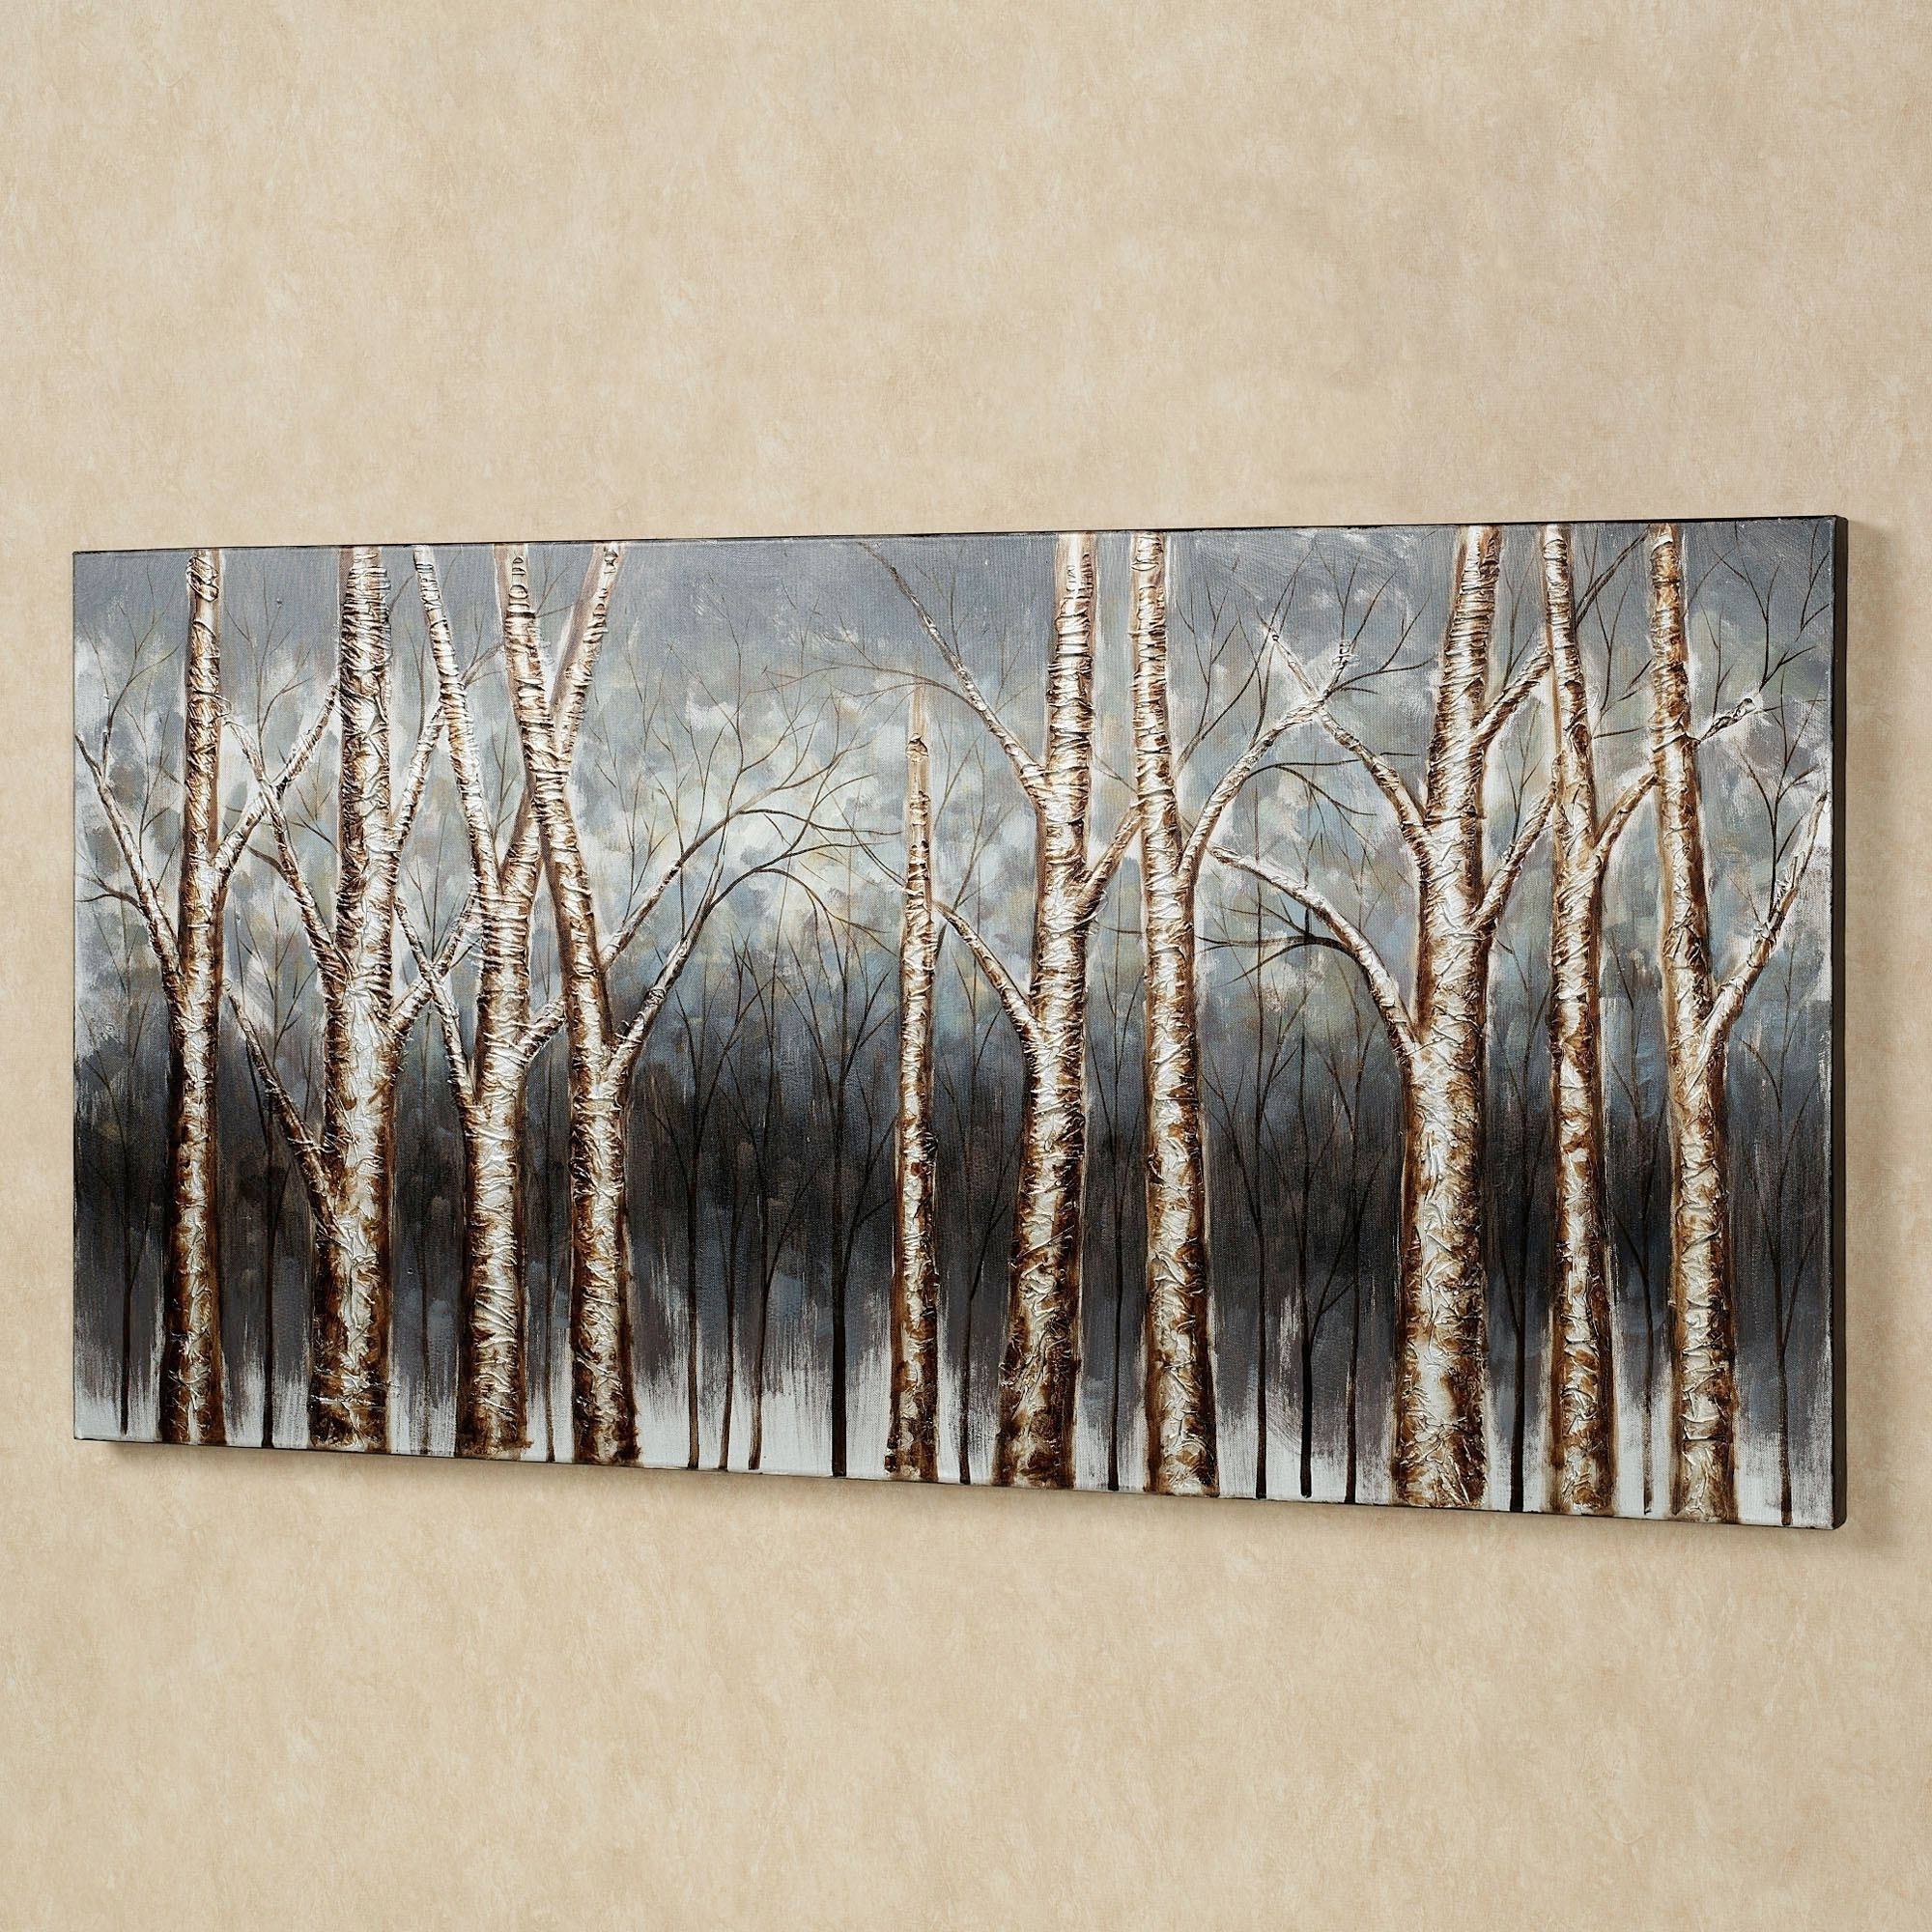 Newest Aspen Tree Grove Handpainted Canvas Art Regarding Canvas Wall Art Of Trees (View 10 of 15)